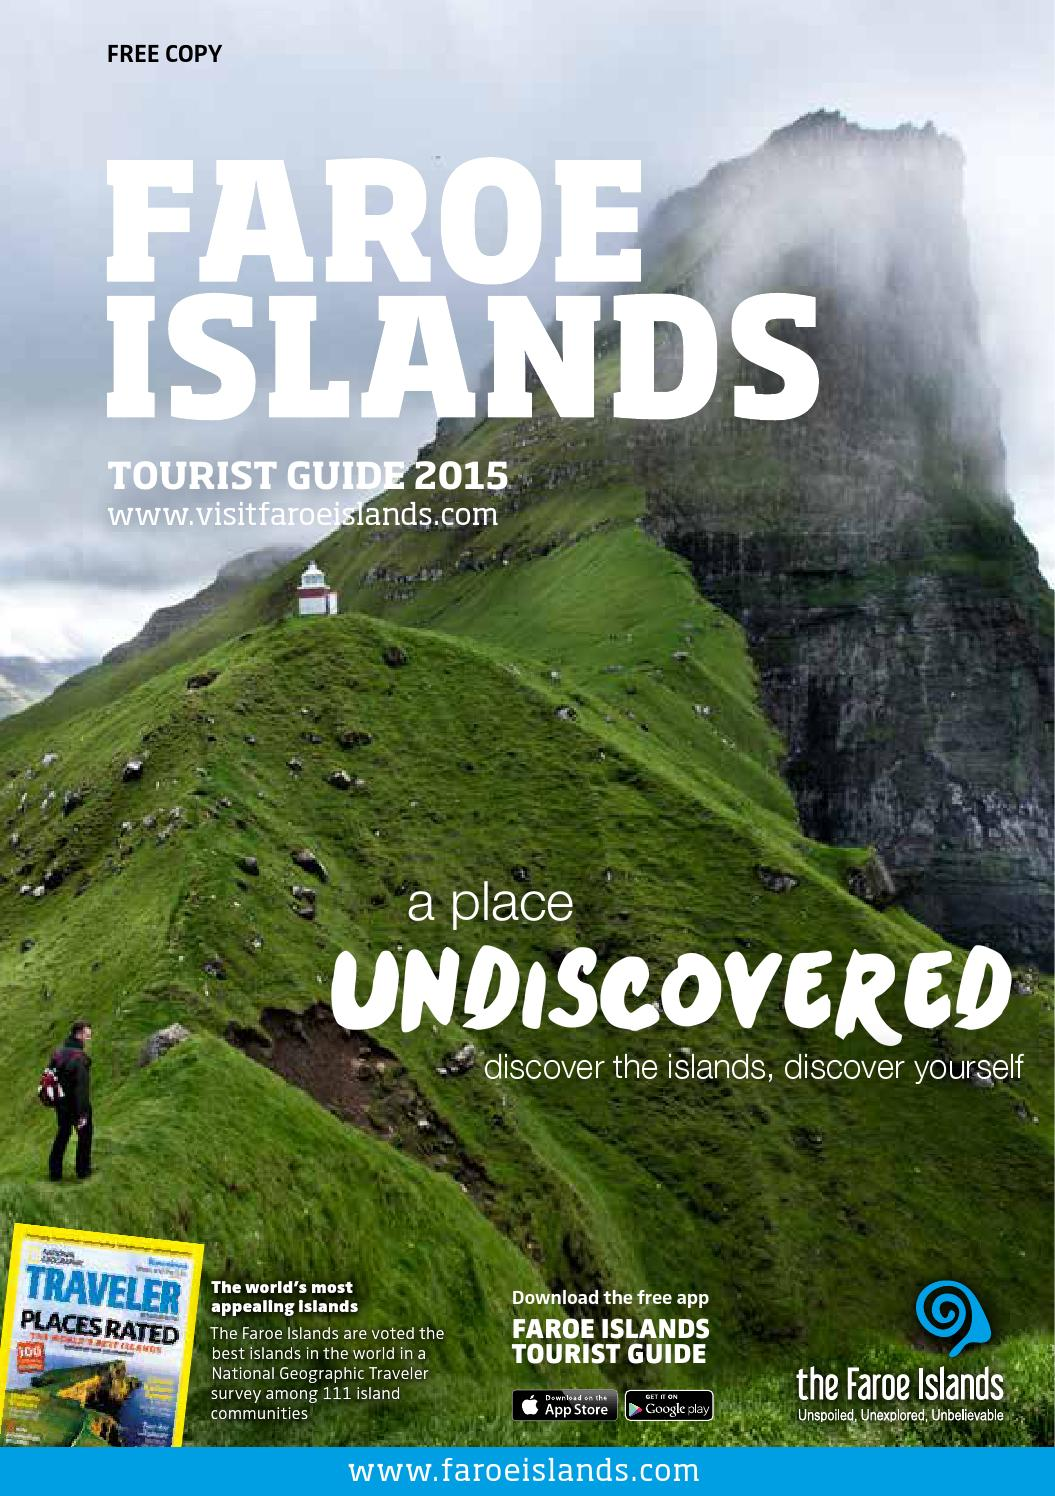 National Geographic Traveler Logo >> Faroe Islands - Tourist guide 2015 by Visit Faroe Islands - Issuu